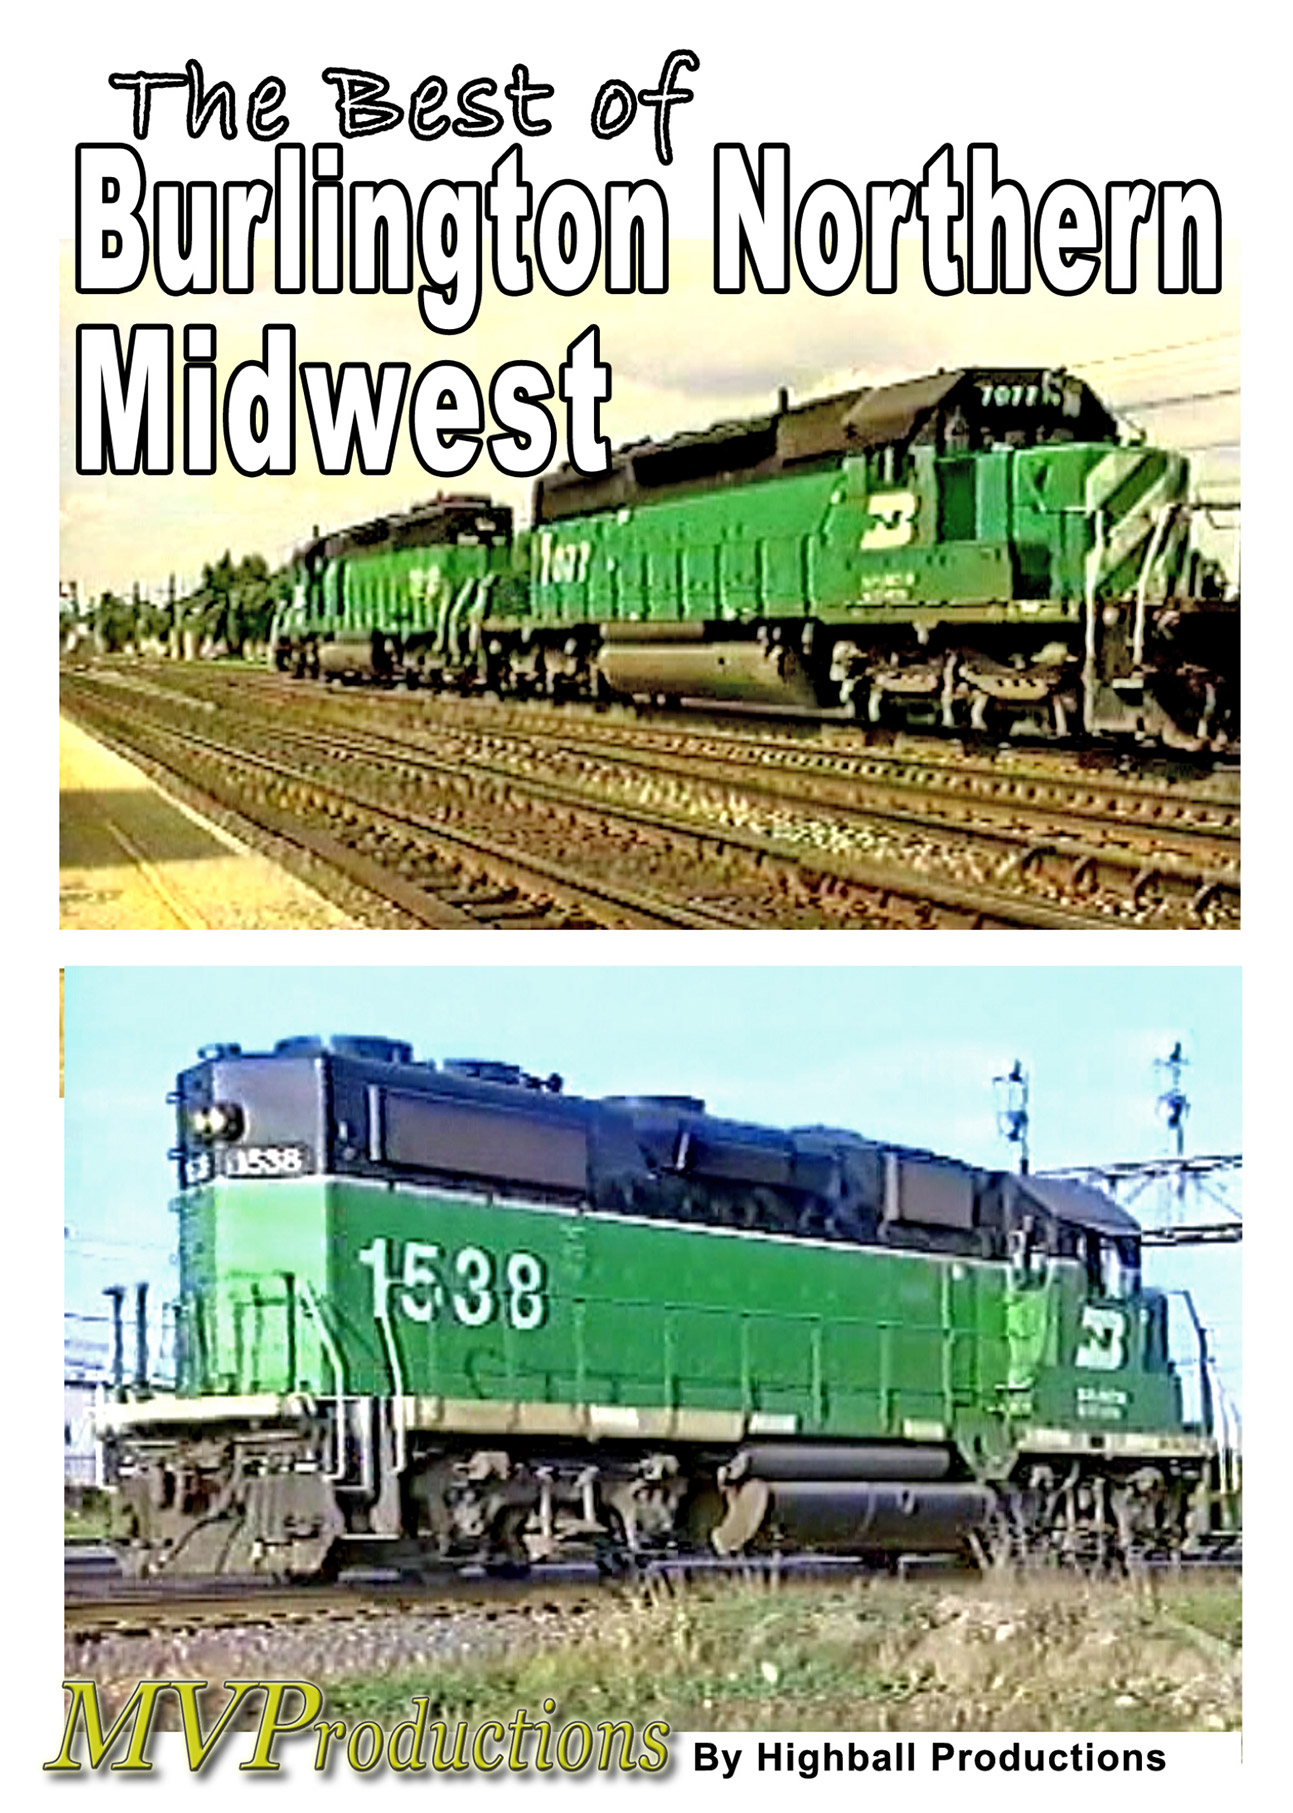 Best of Burlington Northern - Midwest Midwest Video Productions MVBBN 601577880110